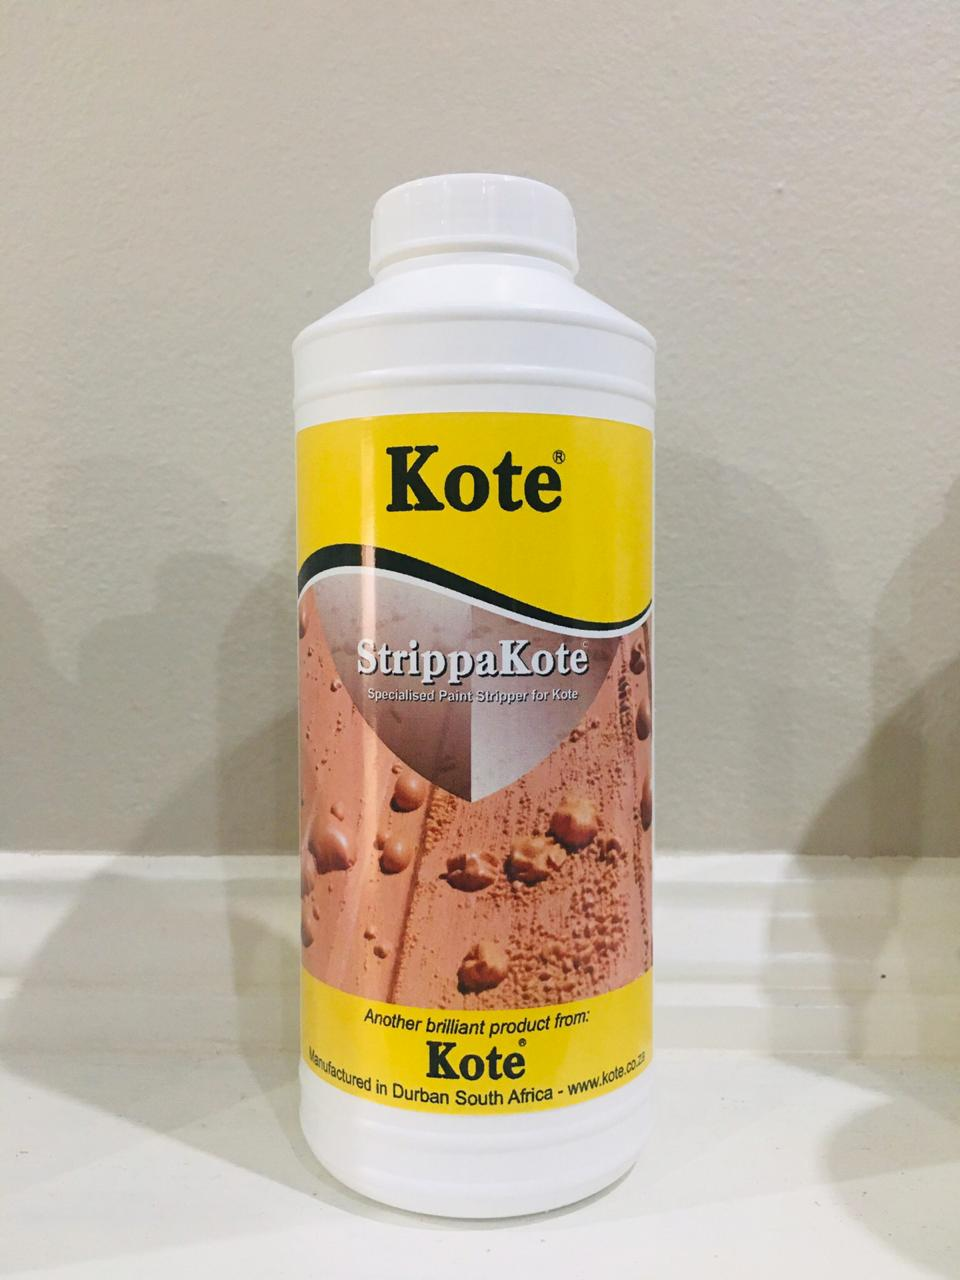 StrippaKote - the only stripper that will remove a Kote Product once applied